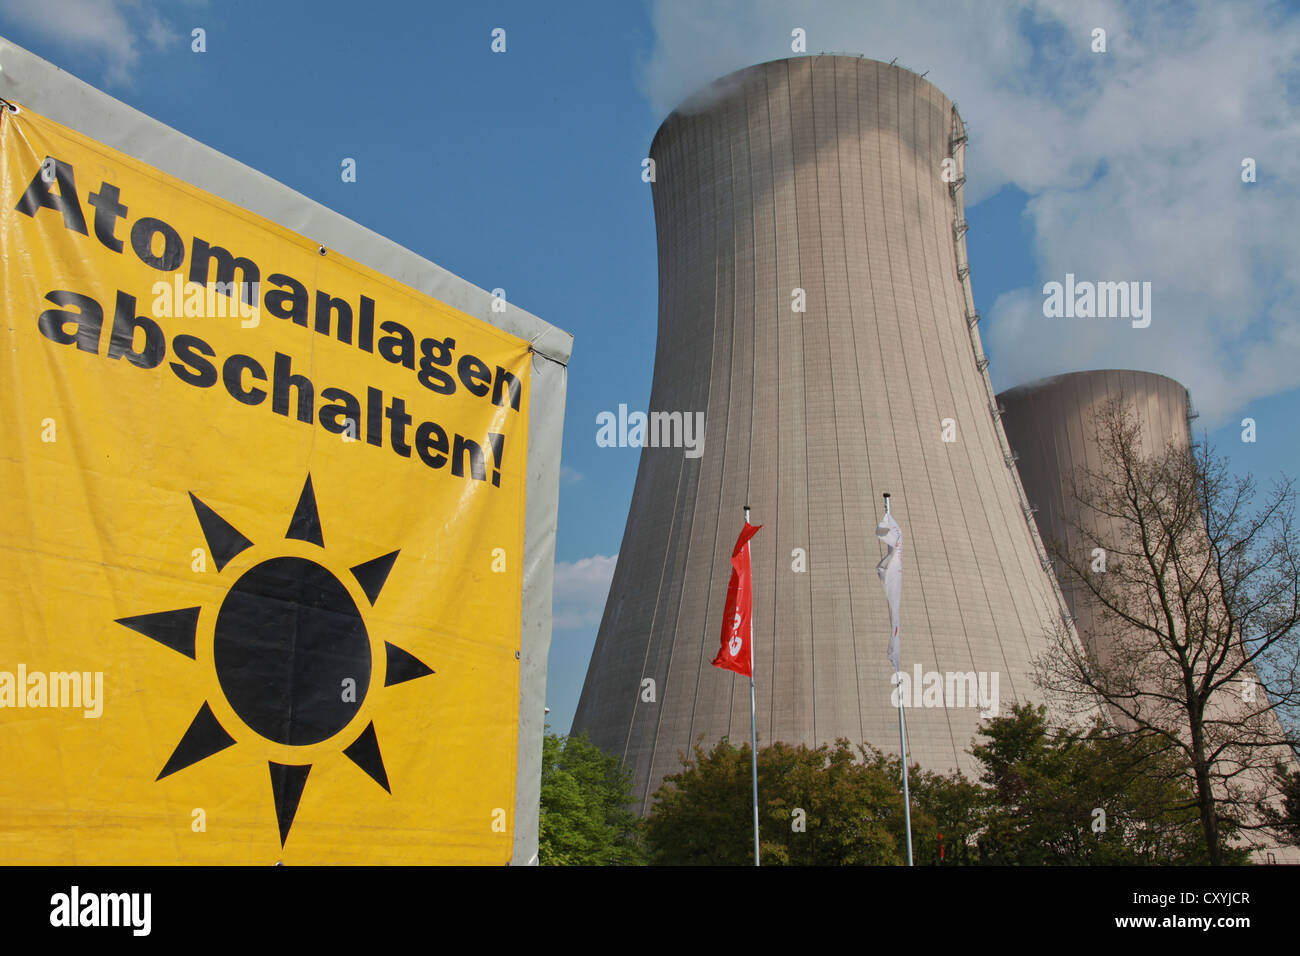 Anti-nuclear protest at Grohnde nuclear power plant, 25 years after the nuclear accident of Chernobyl, Grohnde, - Stock Image